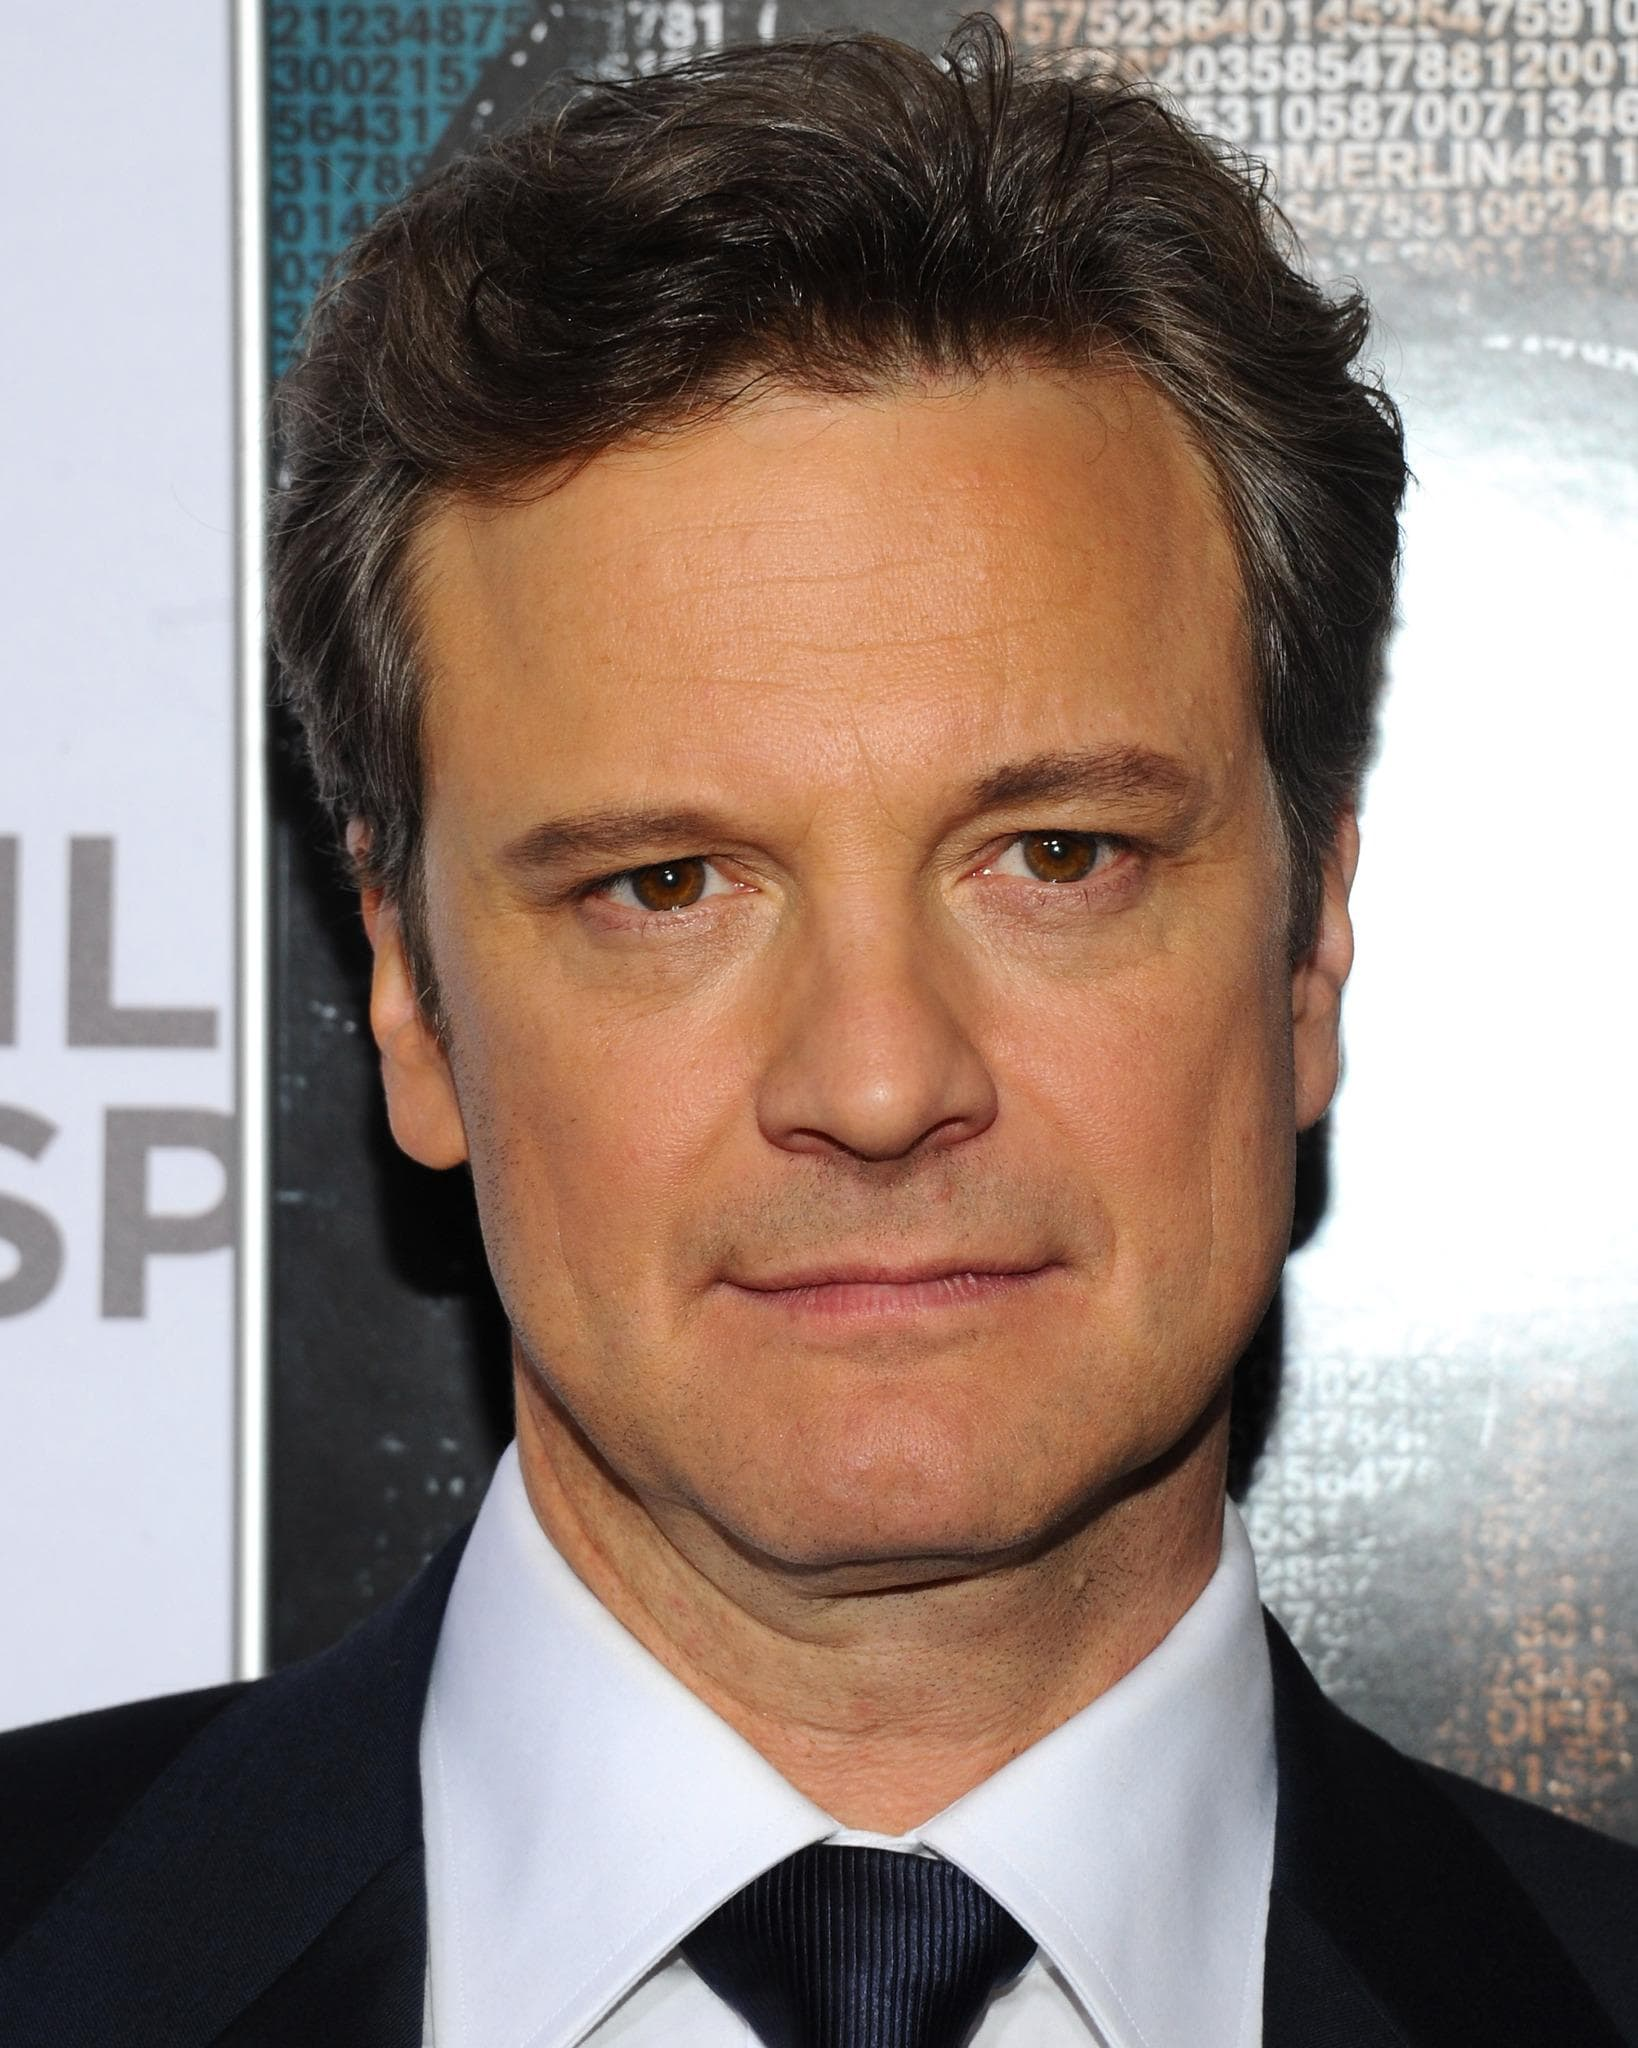 Colin Firth Desktop wallpapers